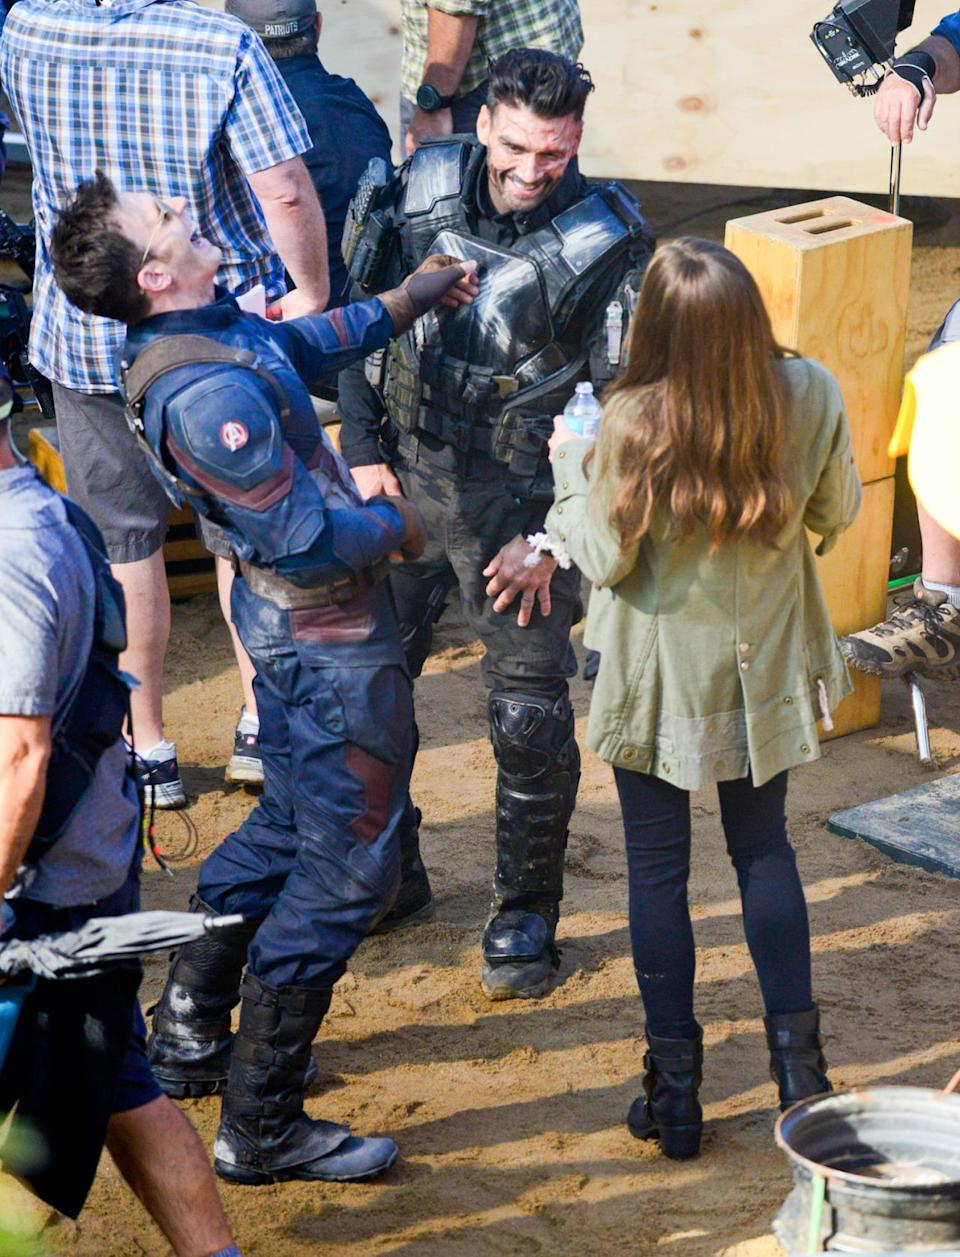 Avengers teammates Captain America (Chris Evans) and Scarlet Witch (Elizabeth Olsen) share a laugh with their mortal enemy Crossbones (Frank Grillo) in between takes on set.